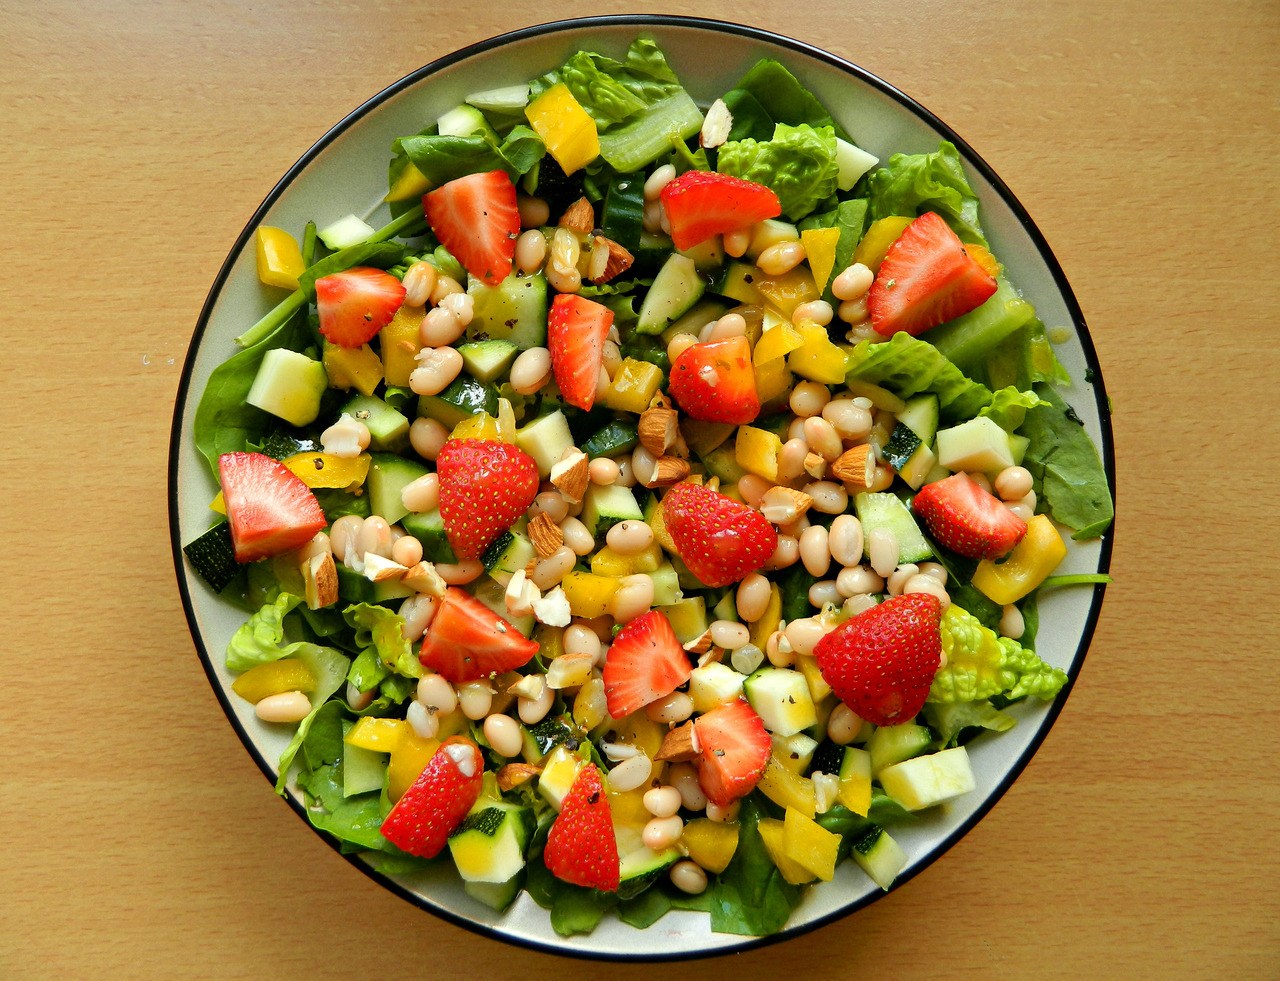 Strawberry and pinto bean salad - Spinach, romaine lettuce, cucumber, courgette, yellow bell pepper, pinto beans, strawberries, chopped almonds, cracked black pepper and a mango and chilli dressing.